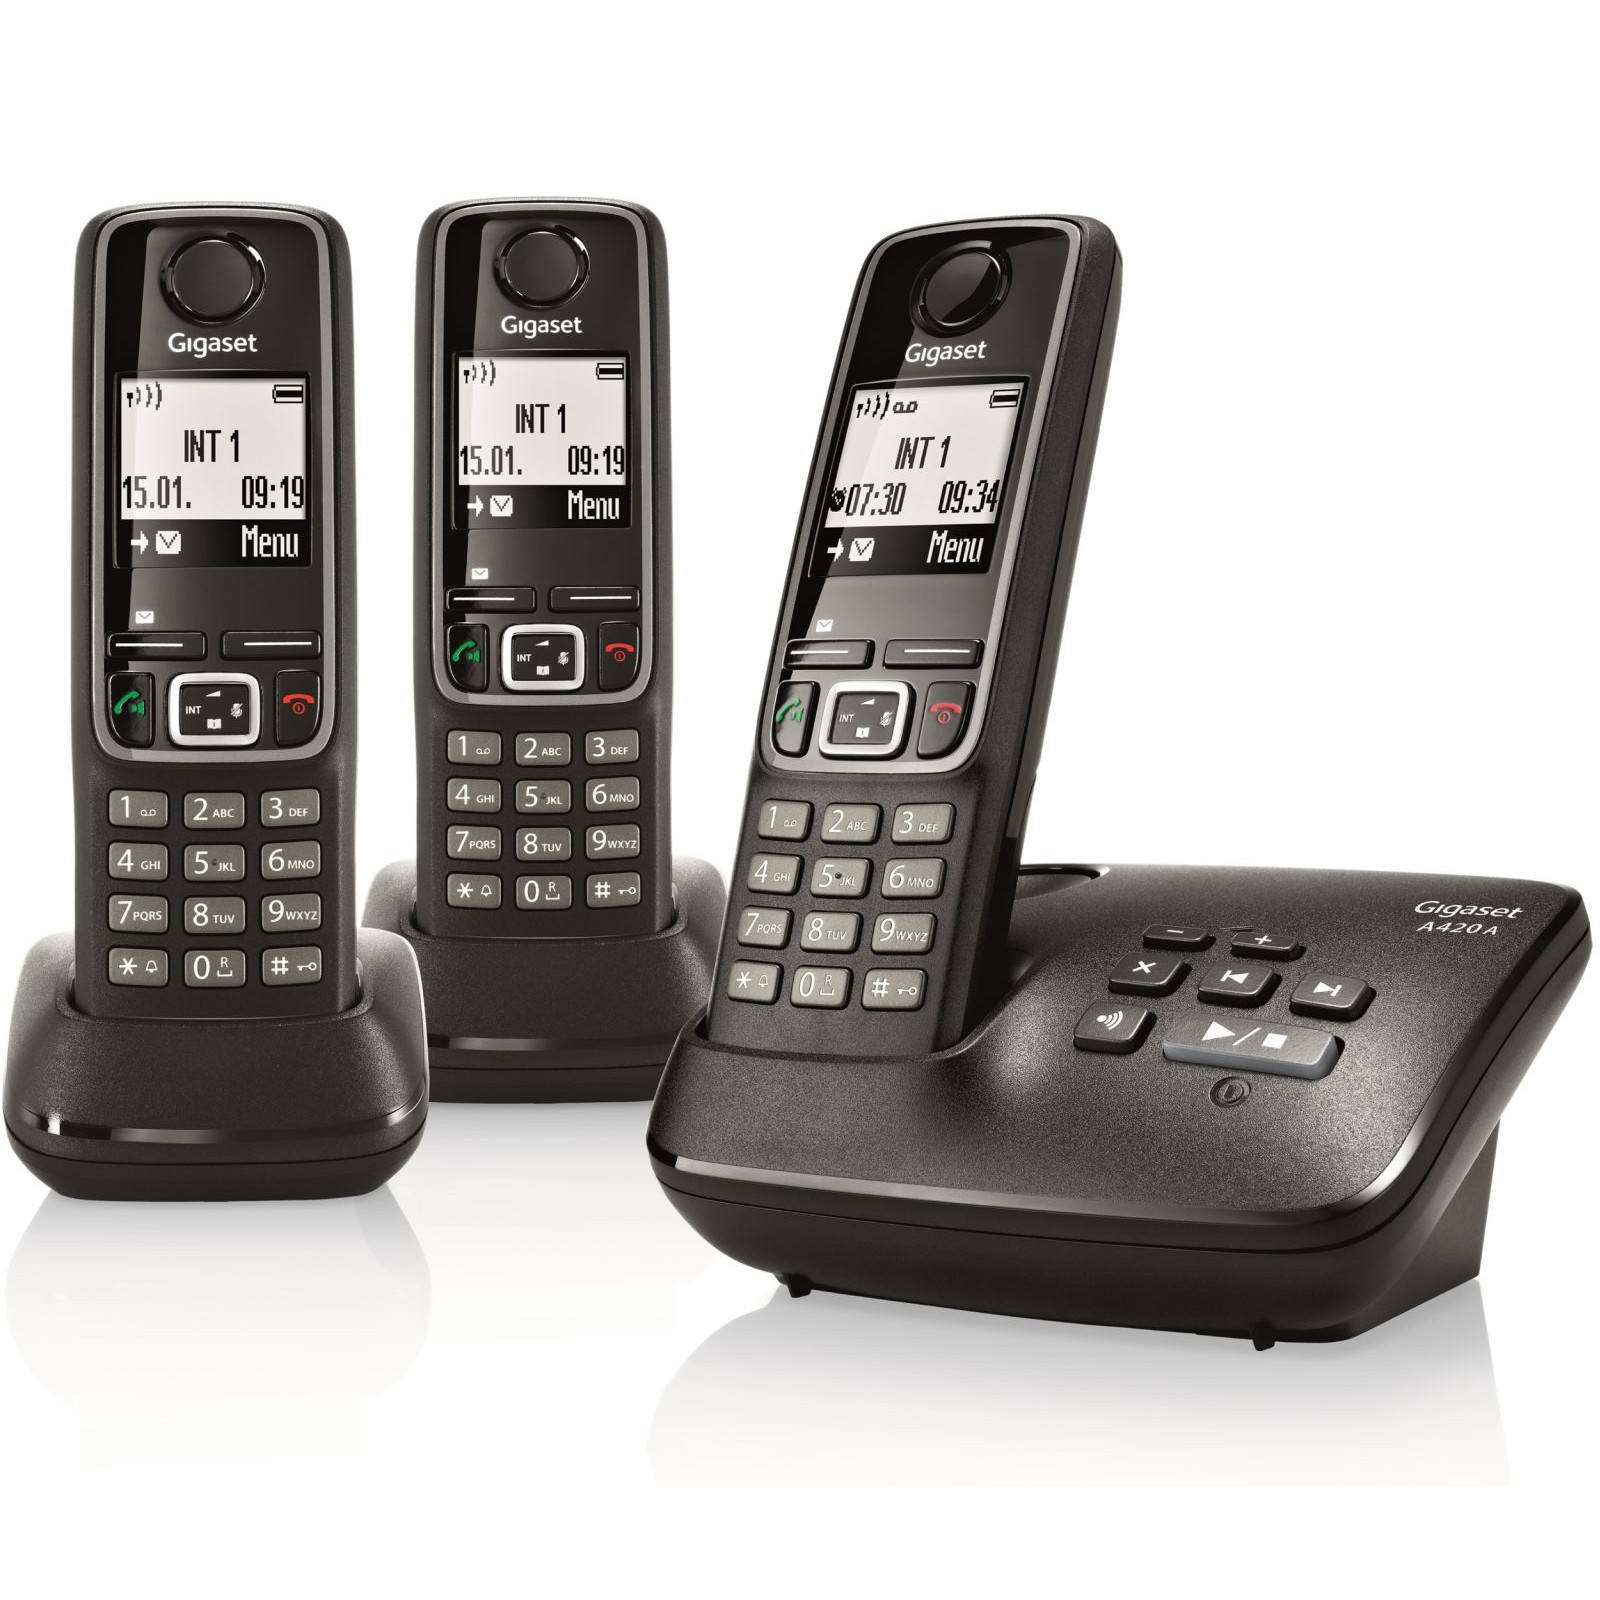 siemens gigaset a420a trio dect cordless phones order online ligo. Black Bedroom Furniture Sets. Home Design Ideas